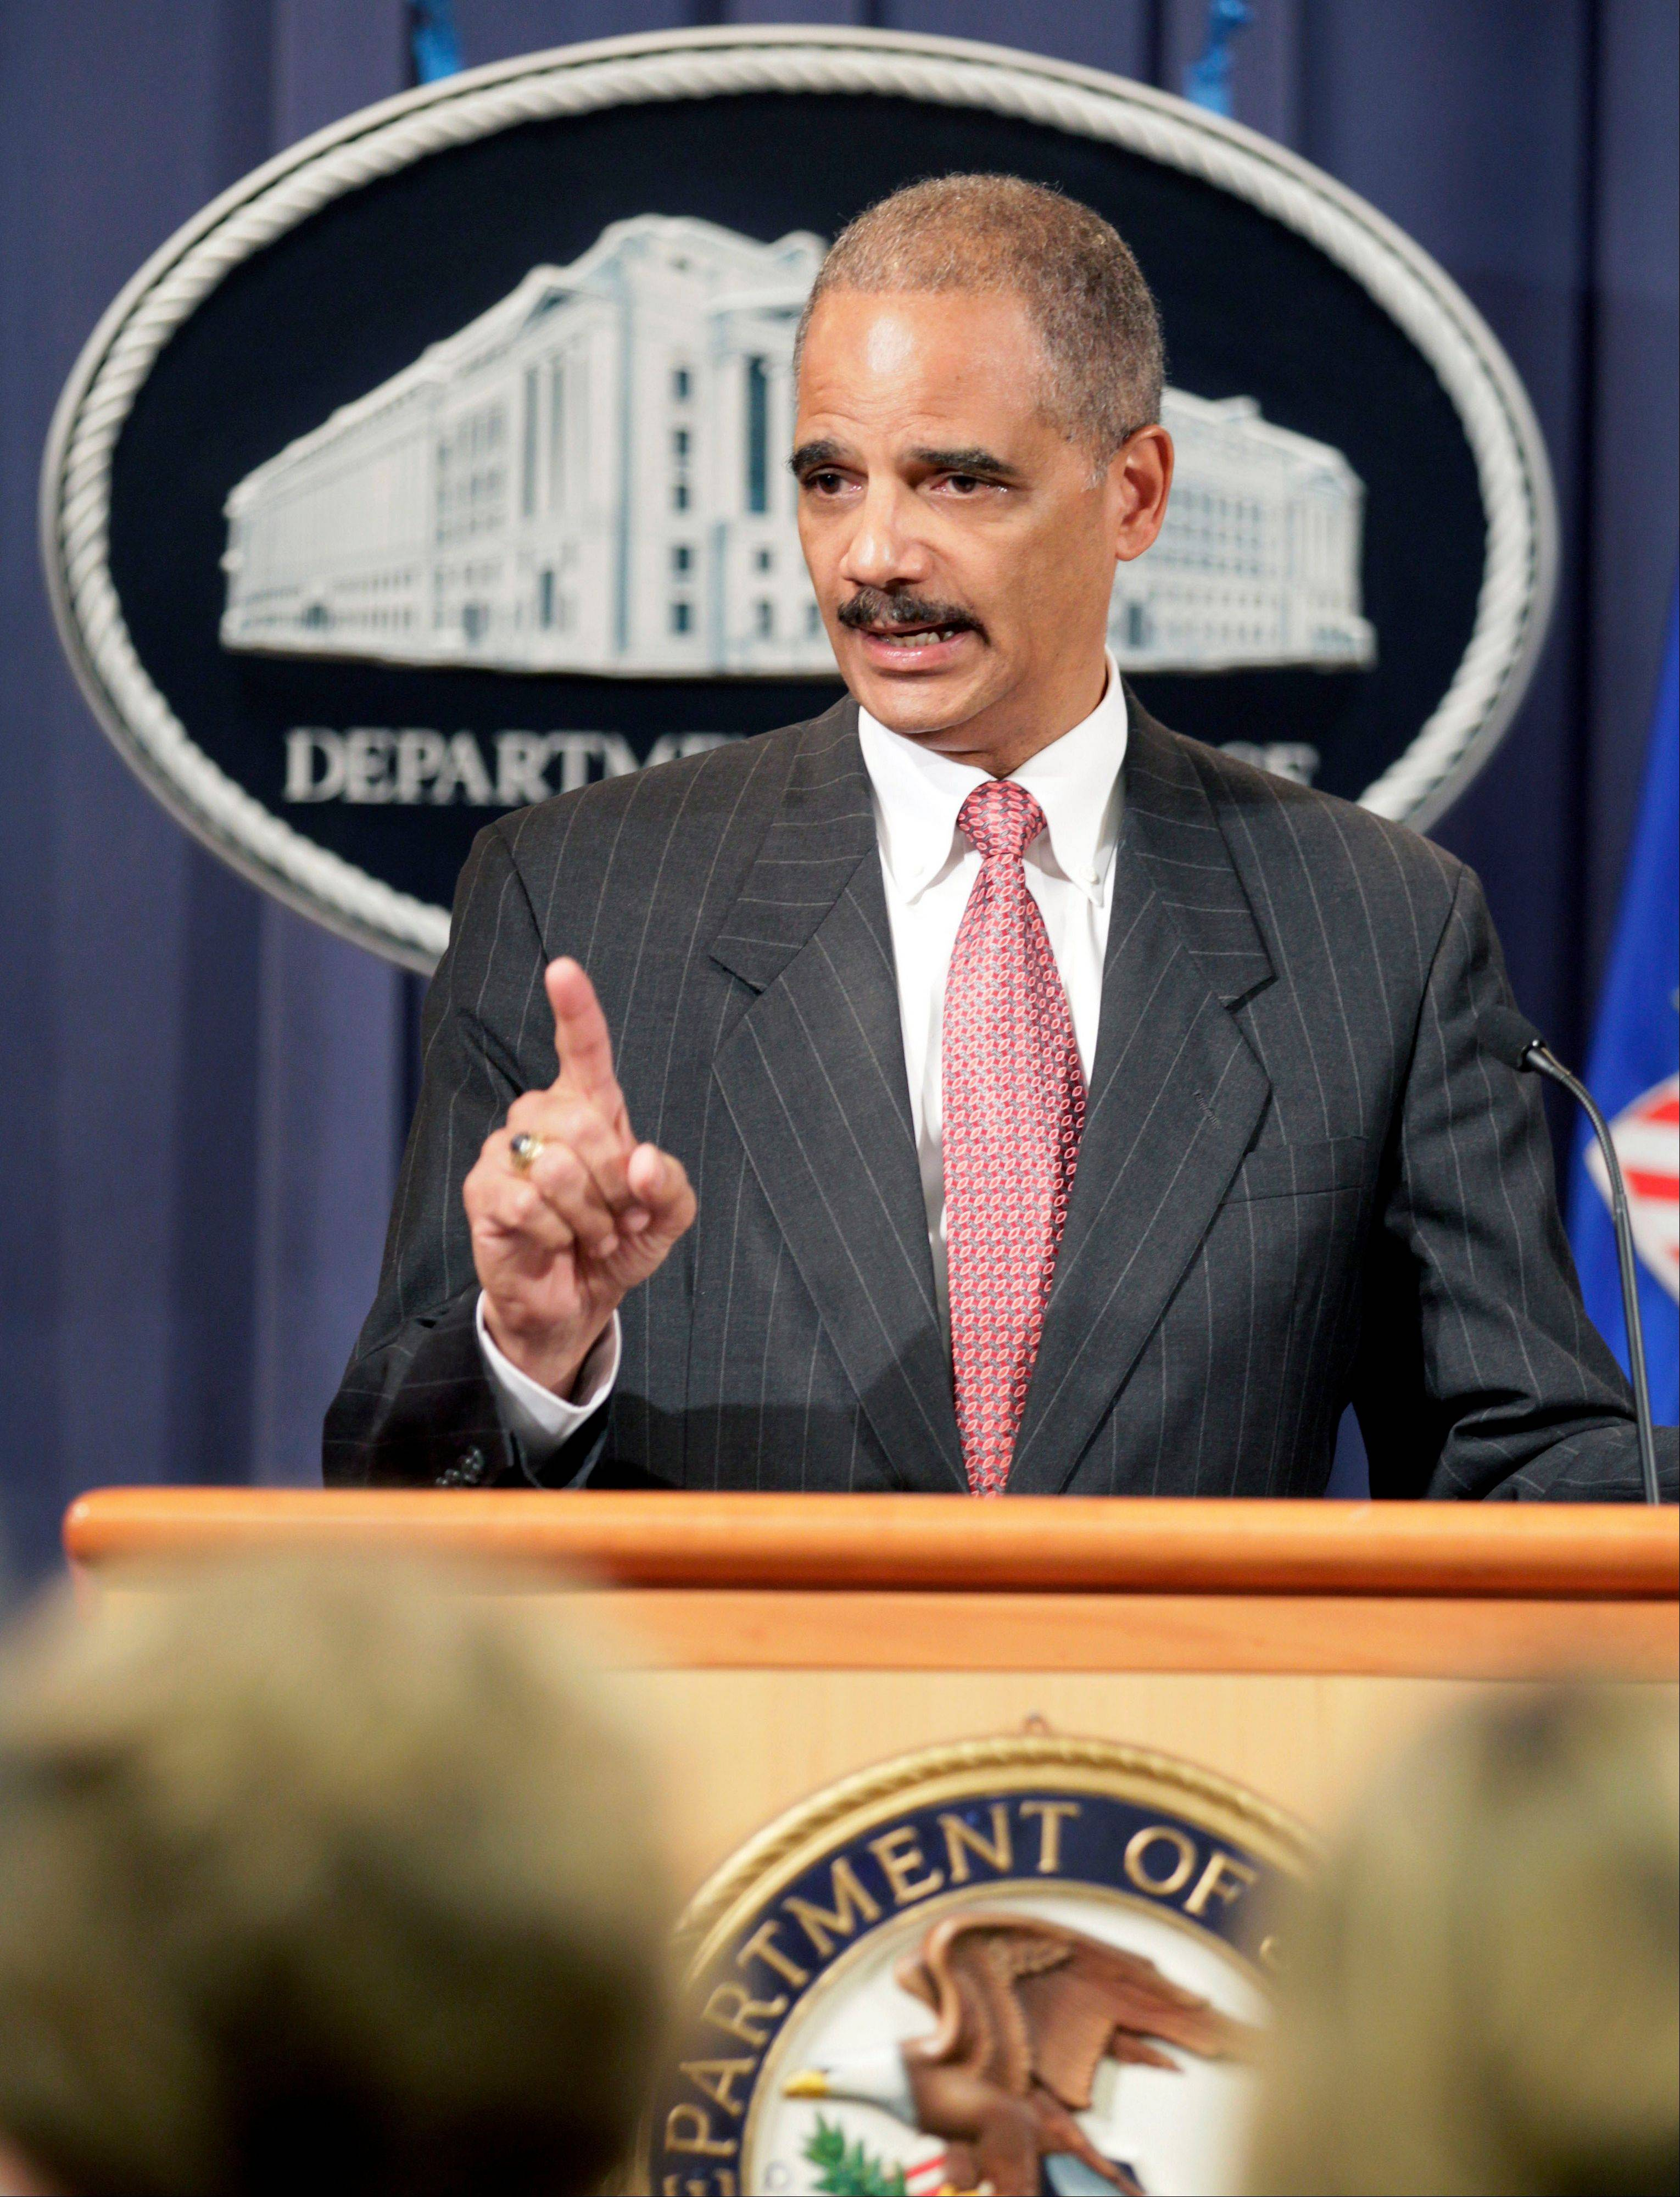 Attorney General Eric Holder said Thursday that the Justice Department will sue Texas over the state's voter ID law and will seek to intervene in a lawsuit over the state's redistricting laws.